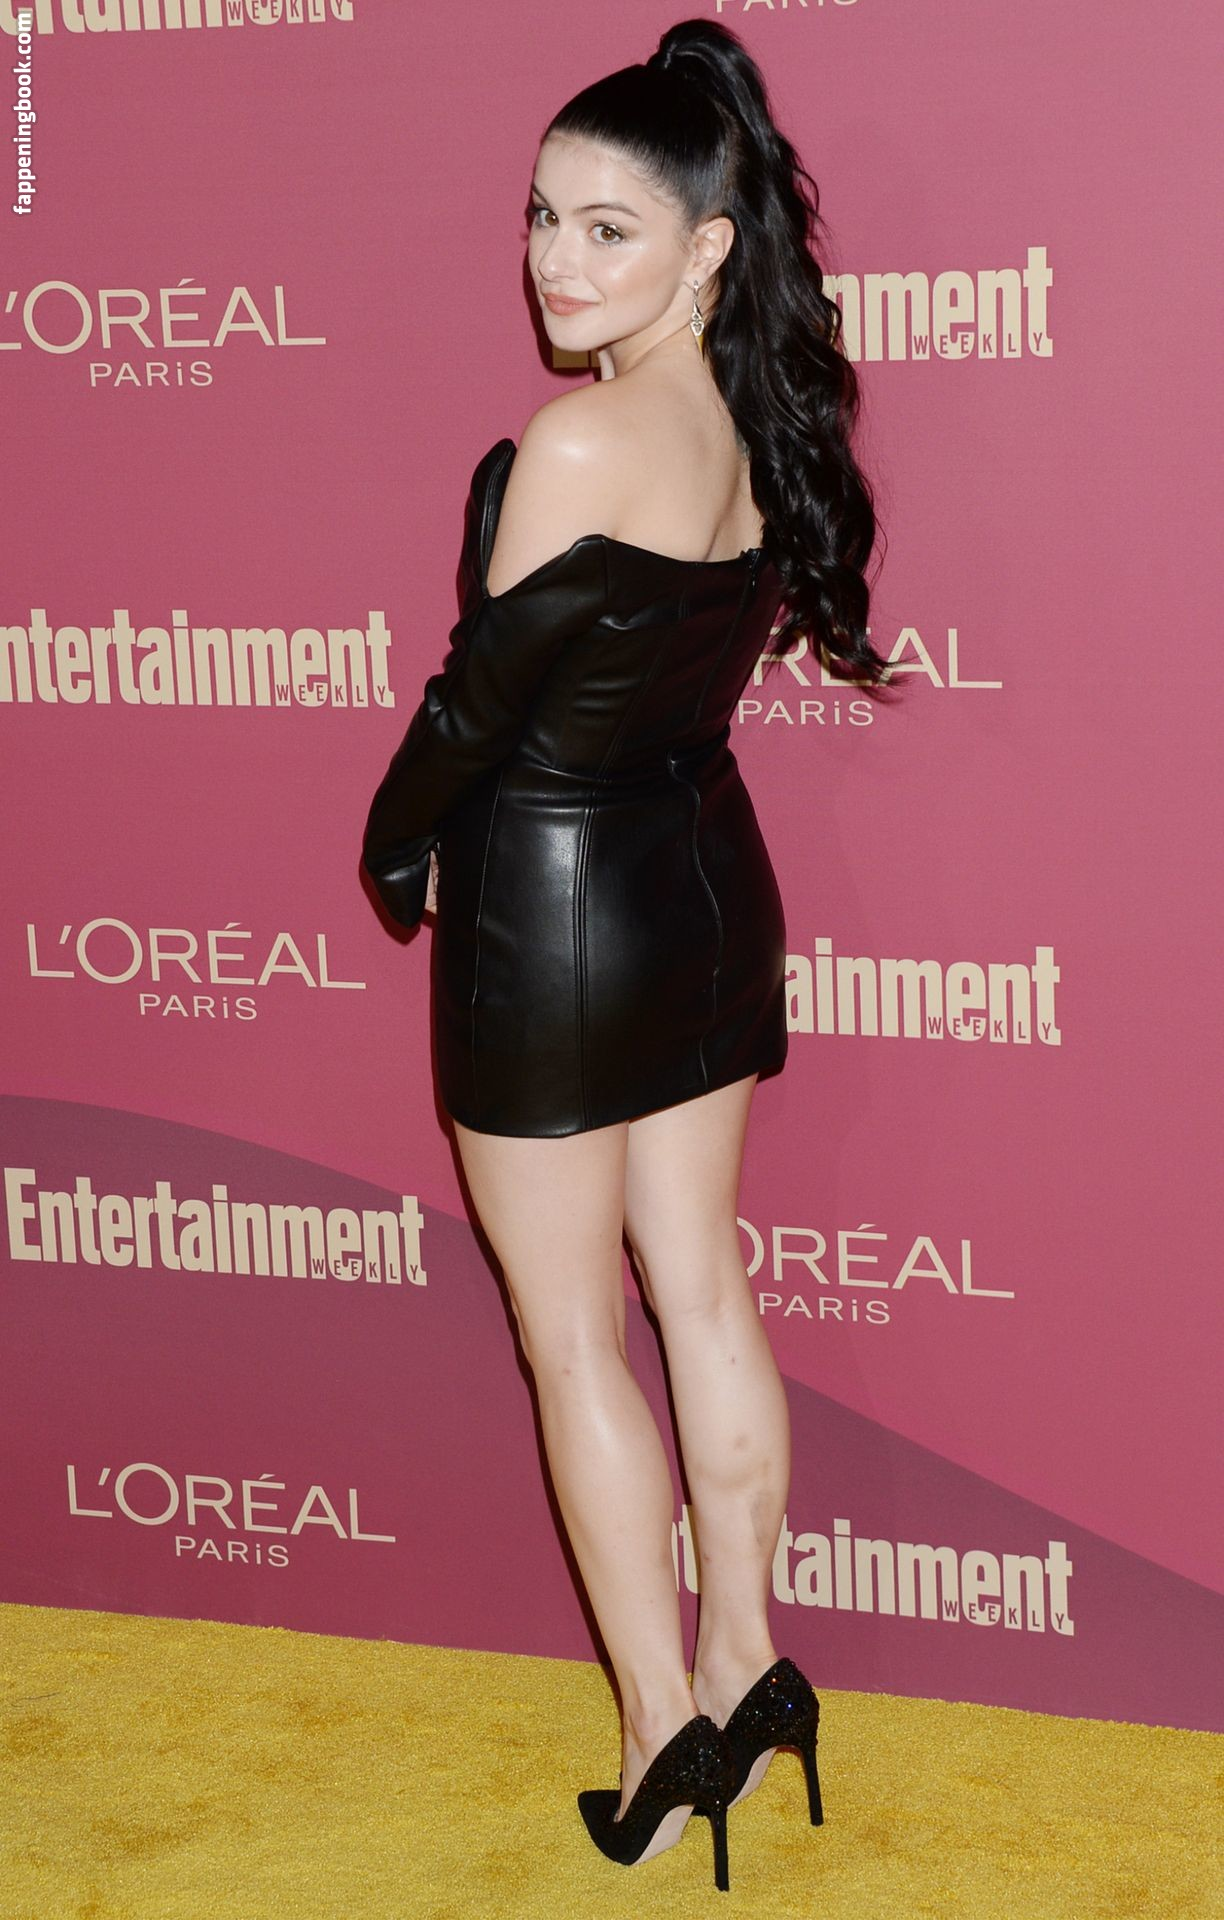 Ariel Winter Nude Oops Collection - Nude and Leaked Pics